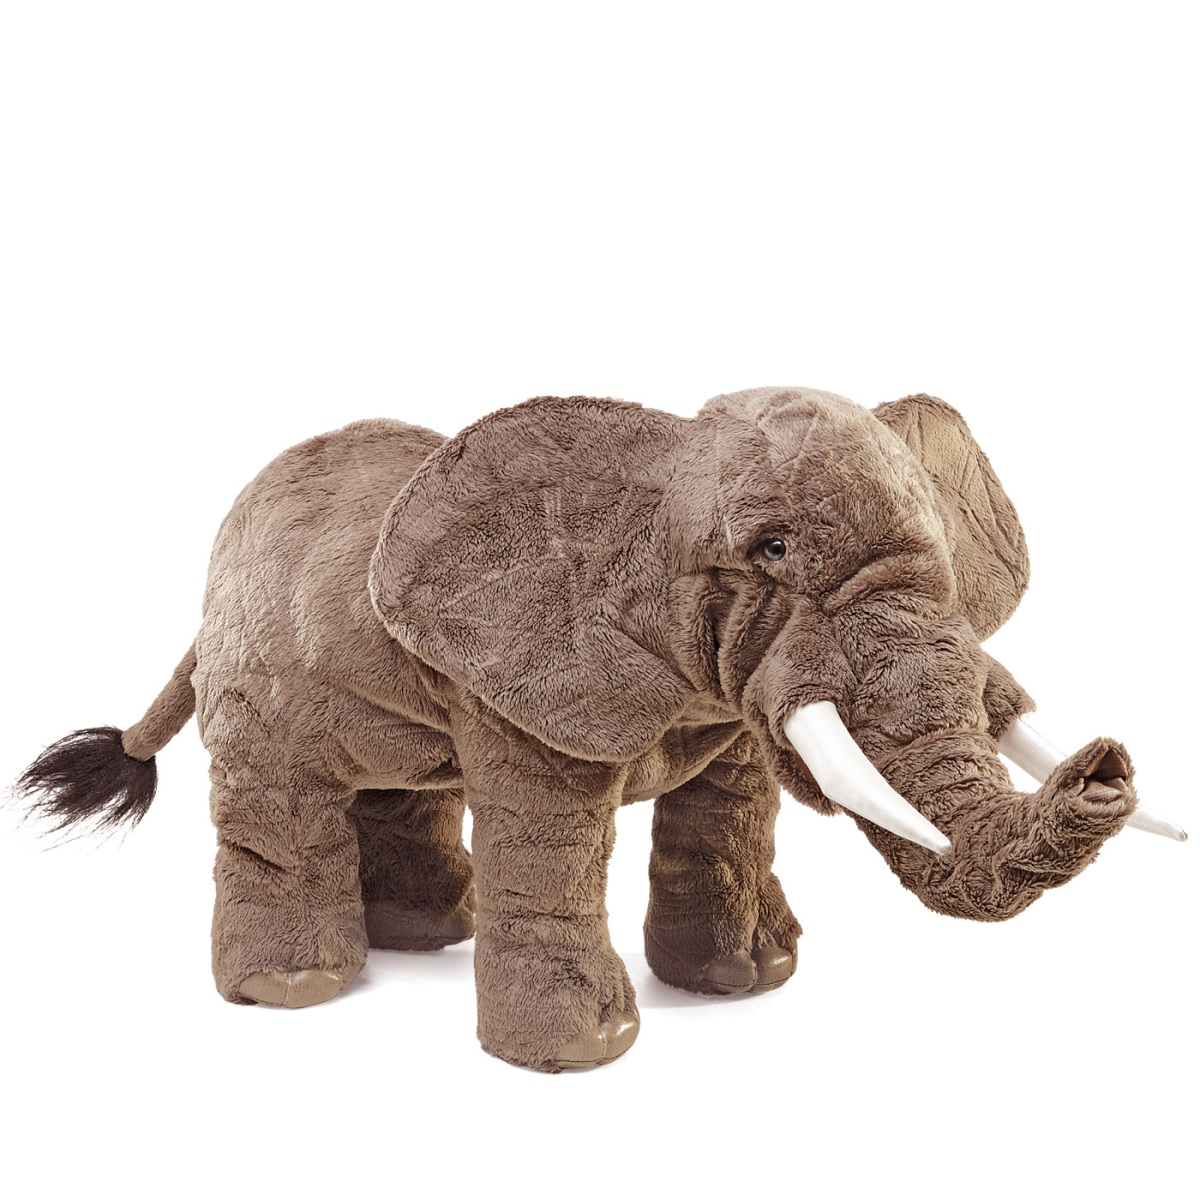 Elephant Hand Puppet & Movable Trunk by Folkmanis Puppets